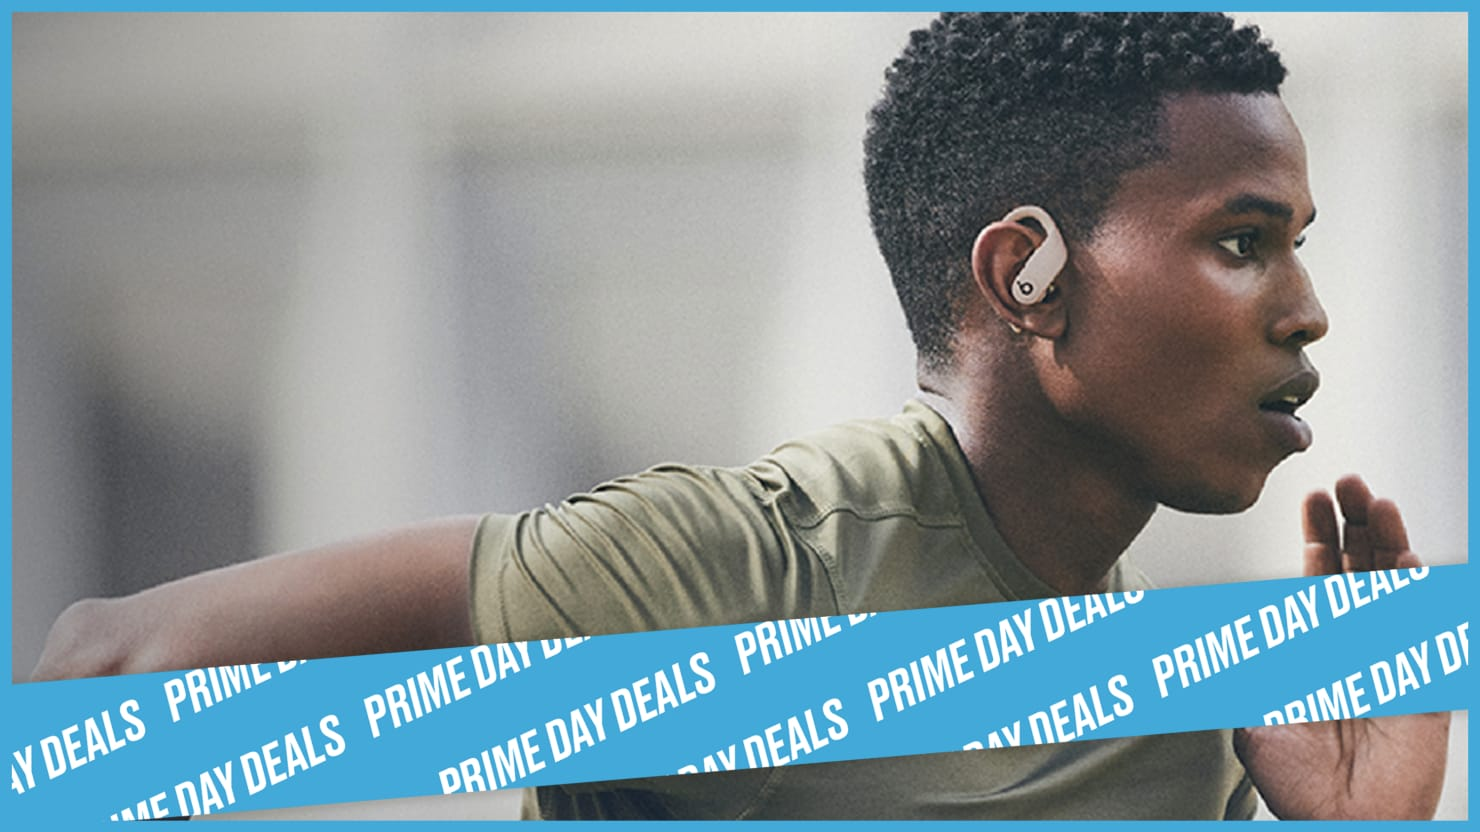 Turn it Up to 11 With This Beats Prime Day Sale